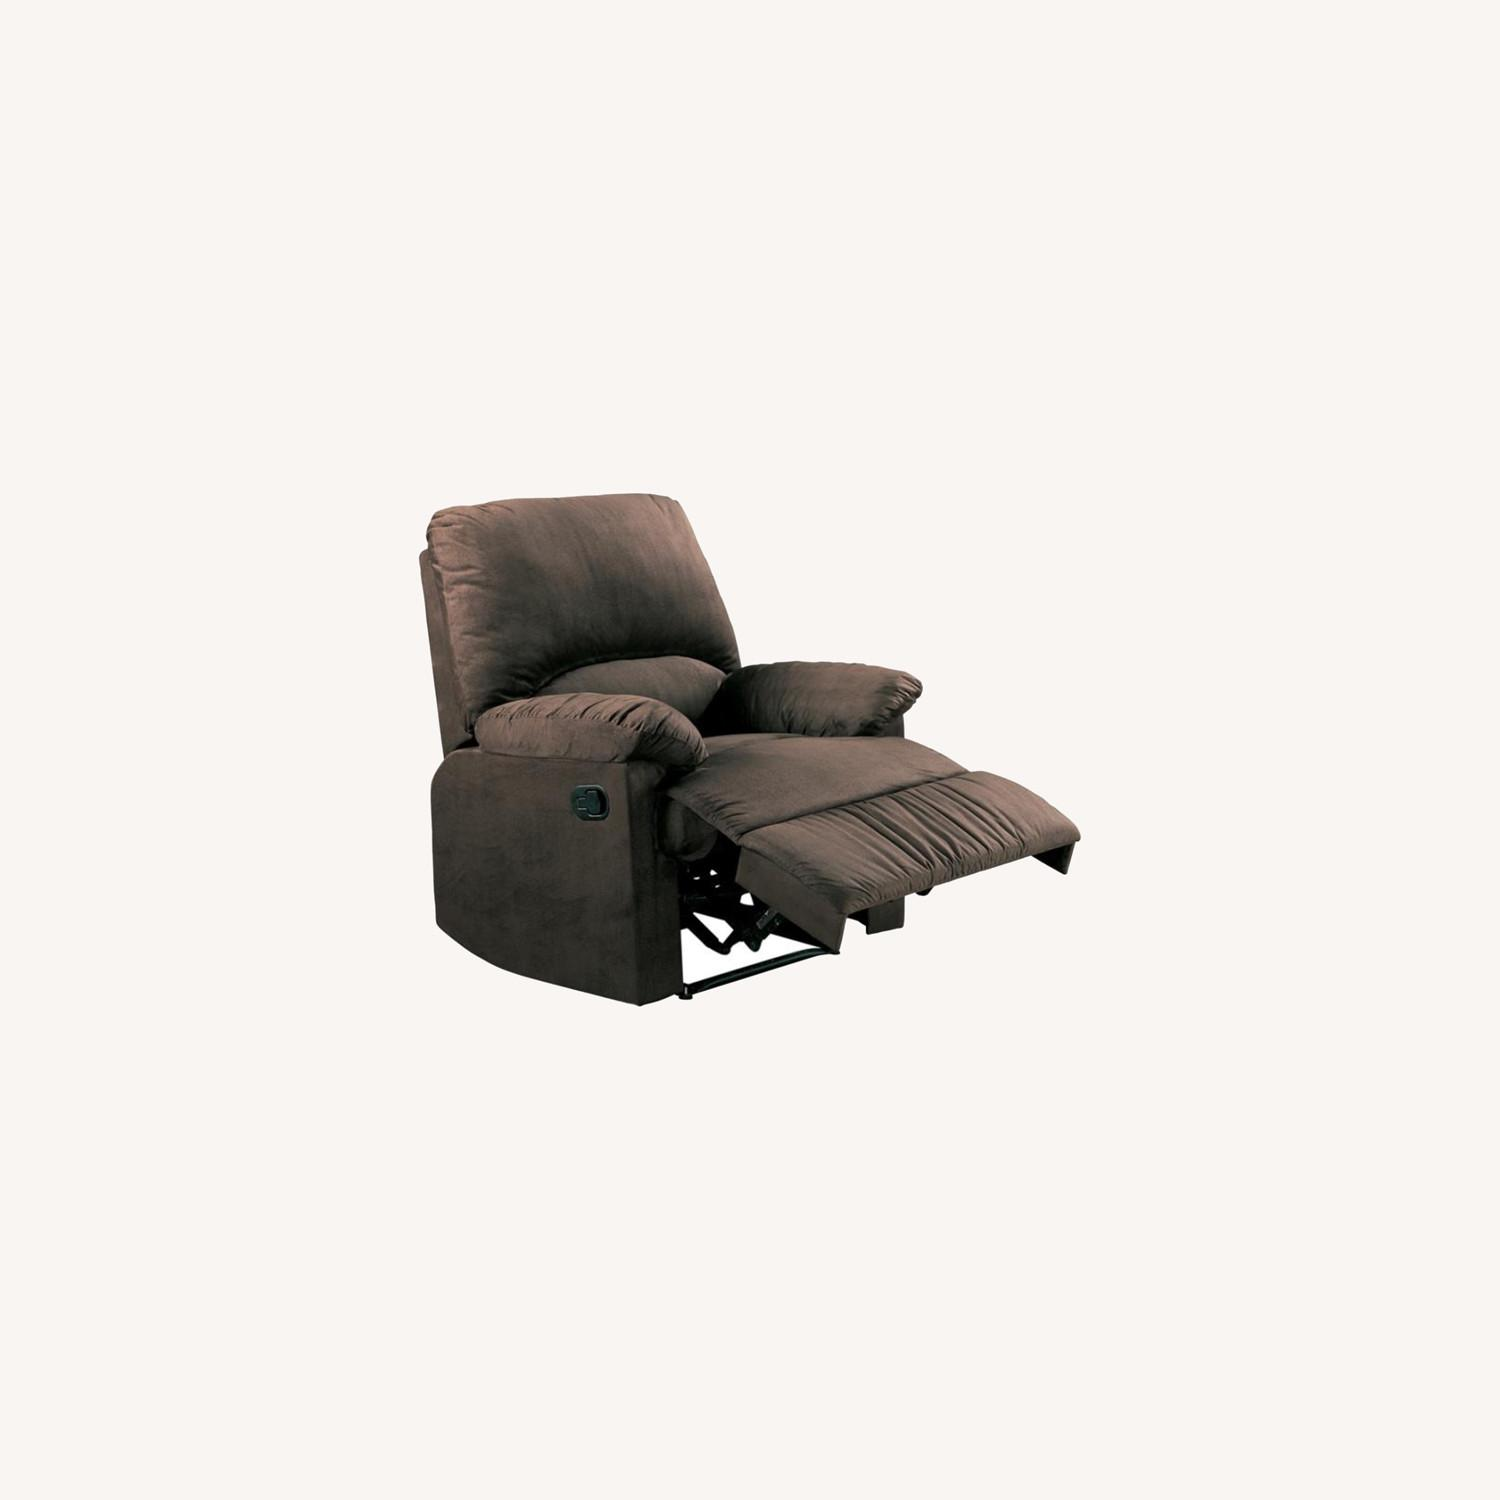 Casual Recliner In Chocolate Microfiber Upholstery - image-3